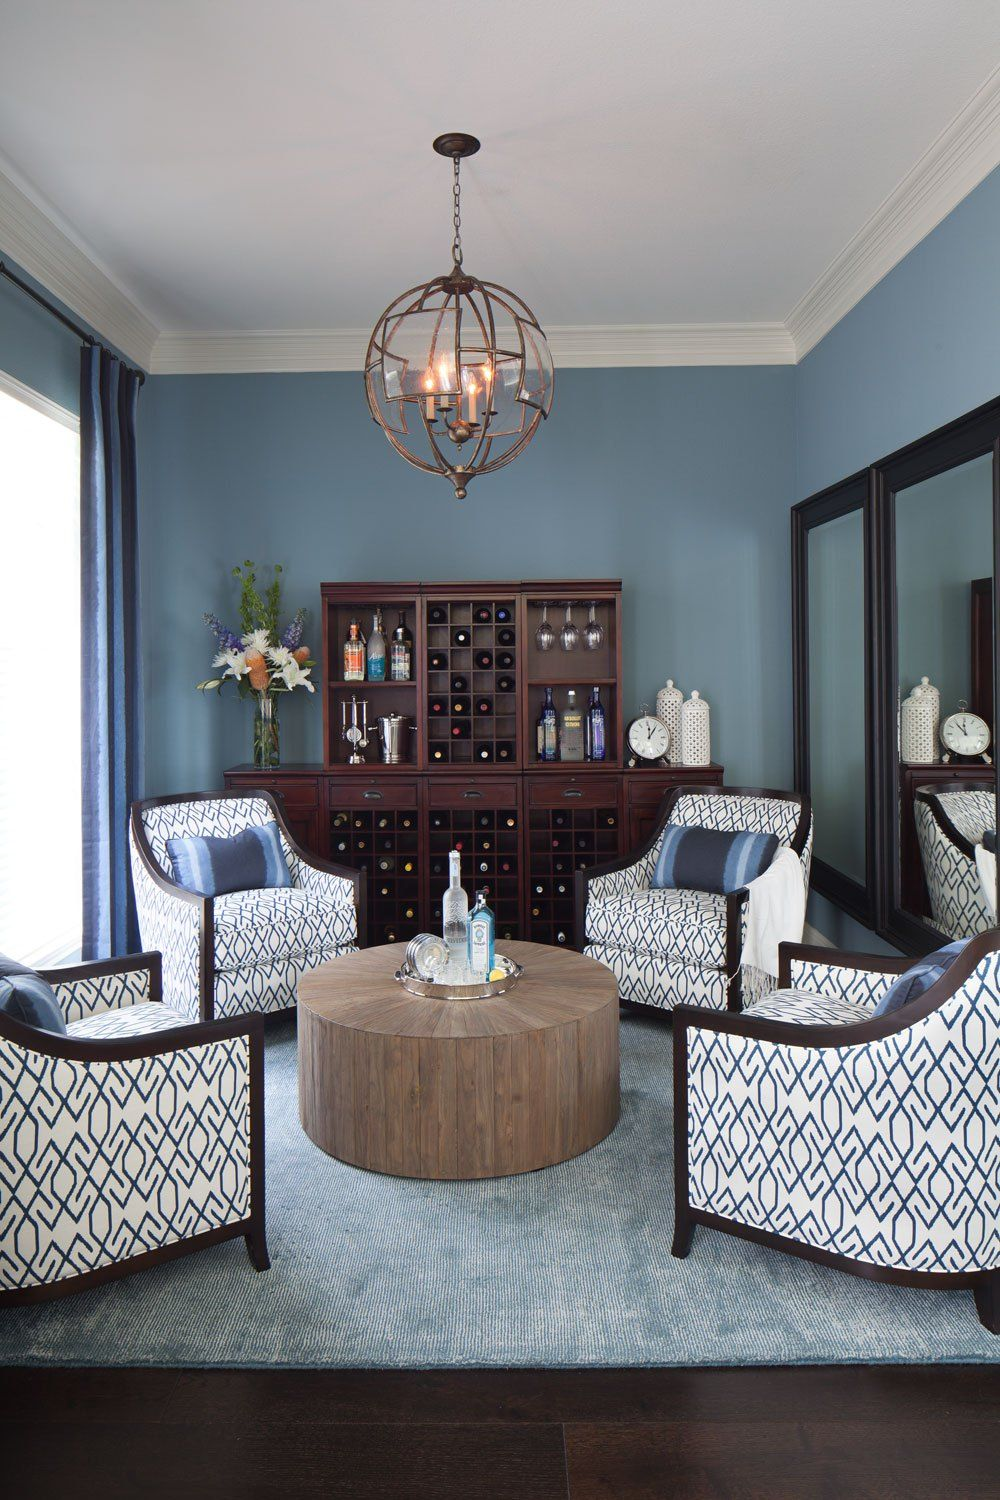 15 Circular Conversation Seating Areas 4 Chairs Around a Coffee Table  The Beautiful Elements